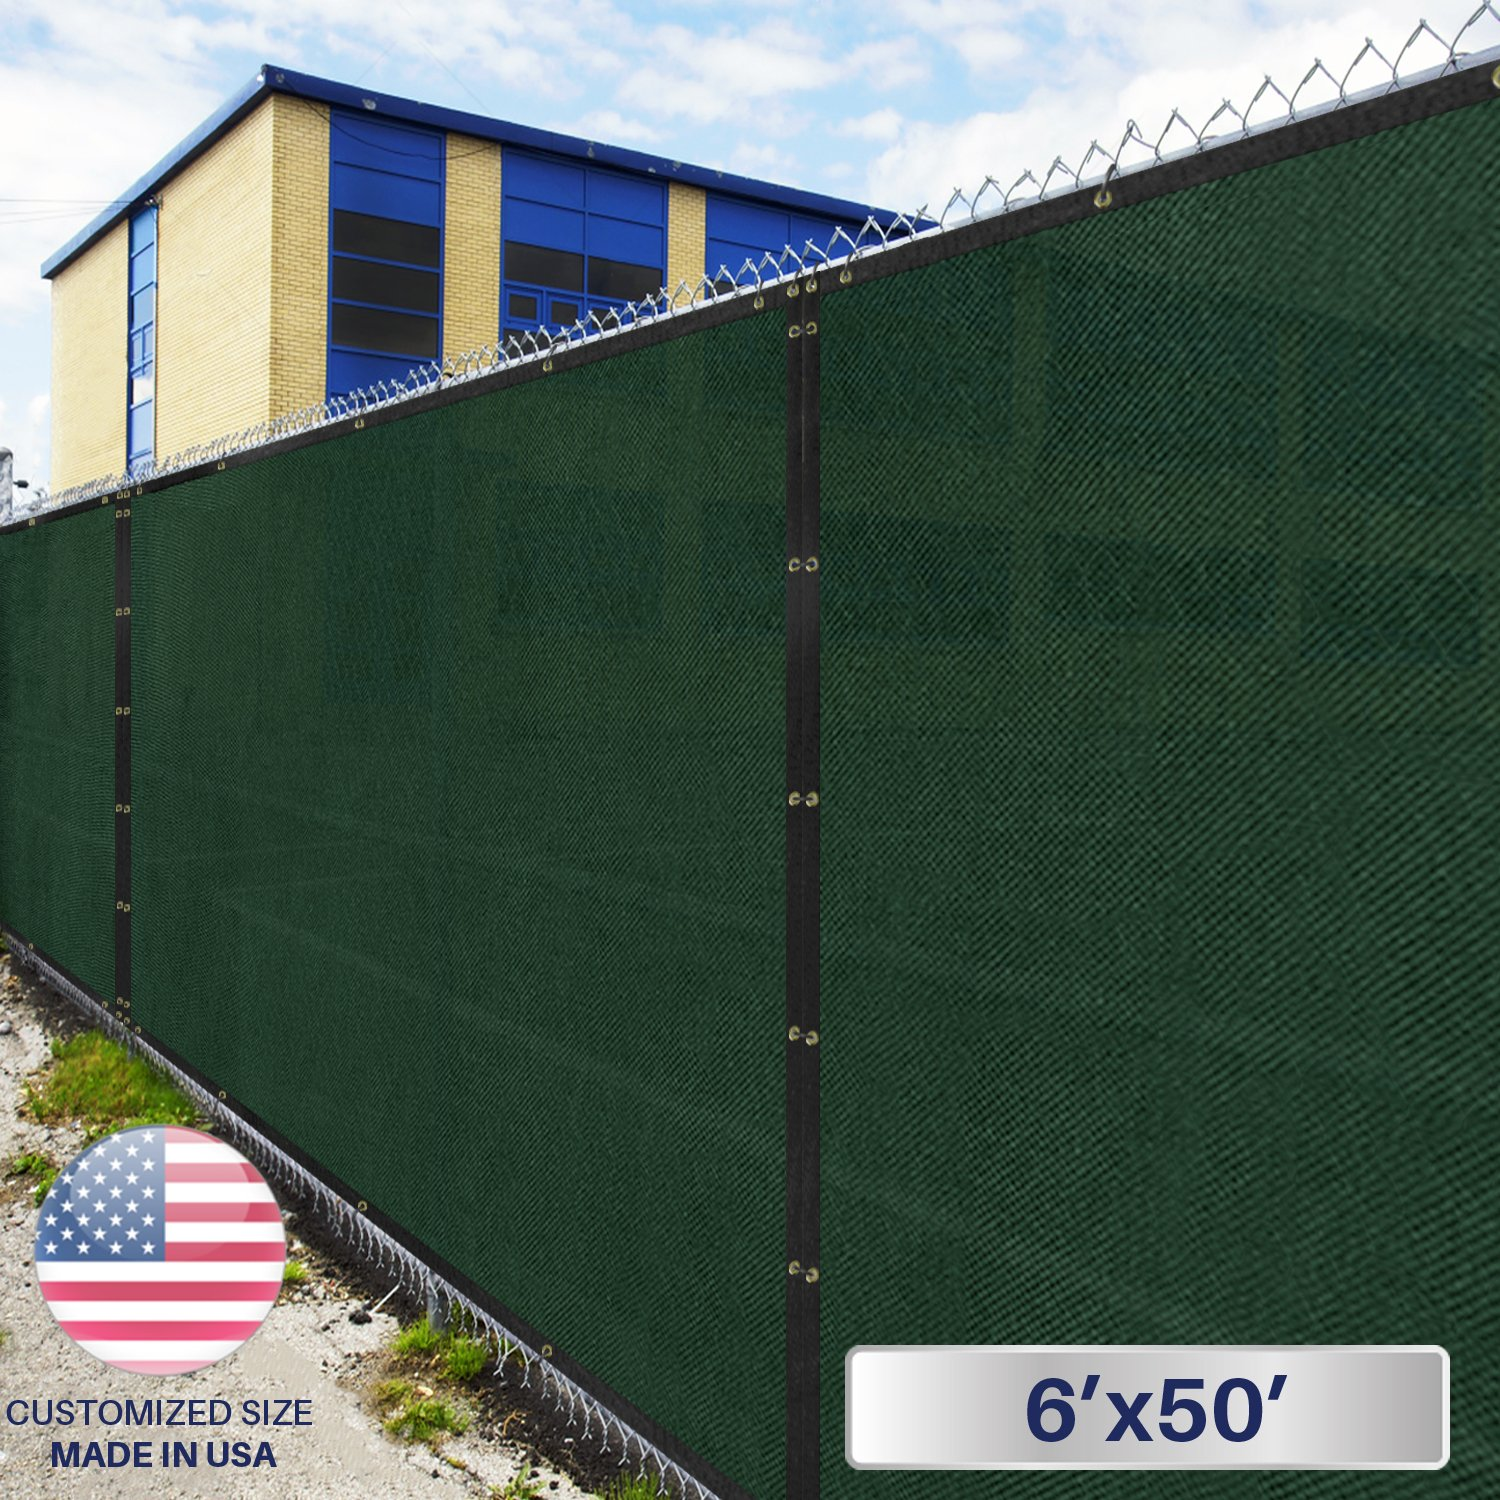 ColourTree Customized Size Fence Screen Privacy Screen Green 6' x 25' - Commercial Grade 170 GSM - Heavy Duty - 3 Years Warranty